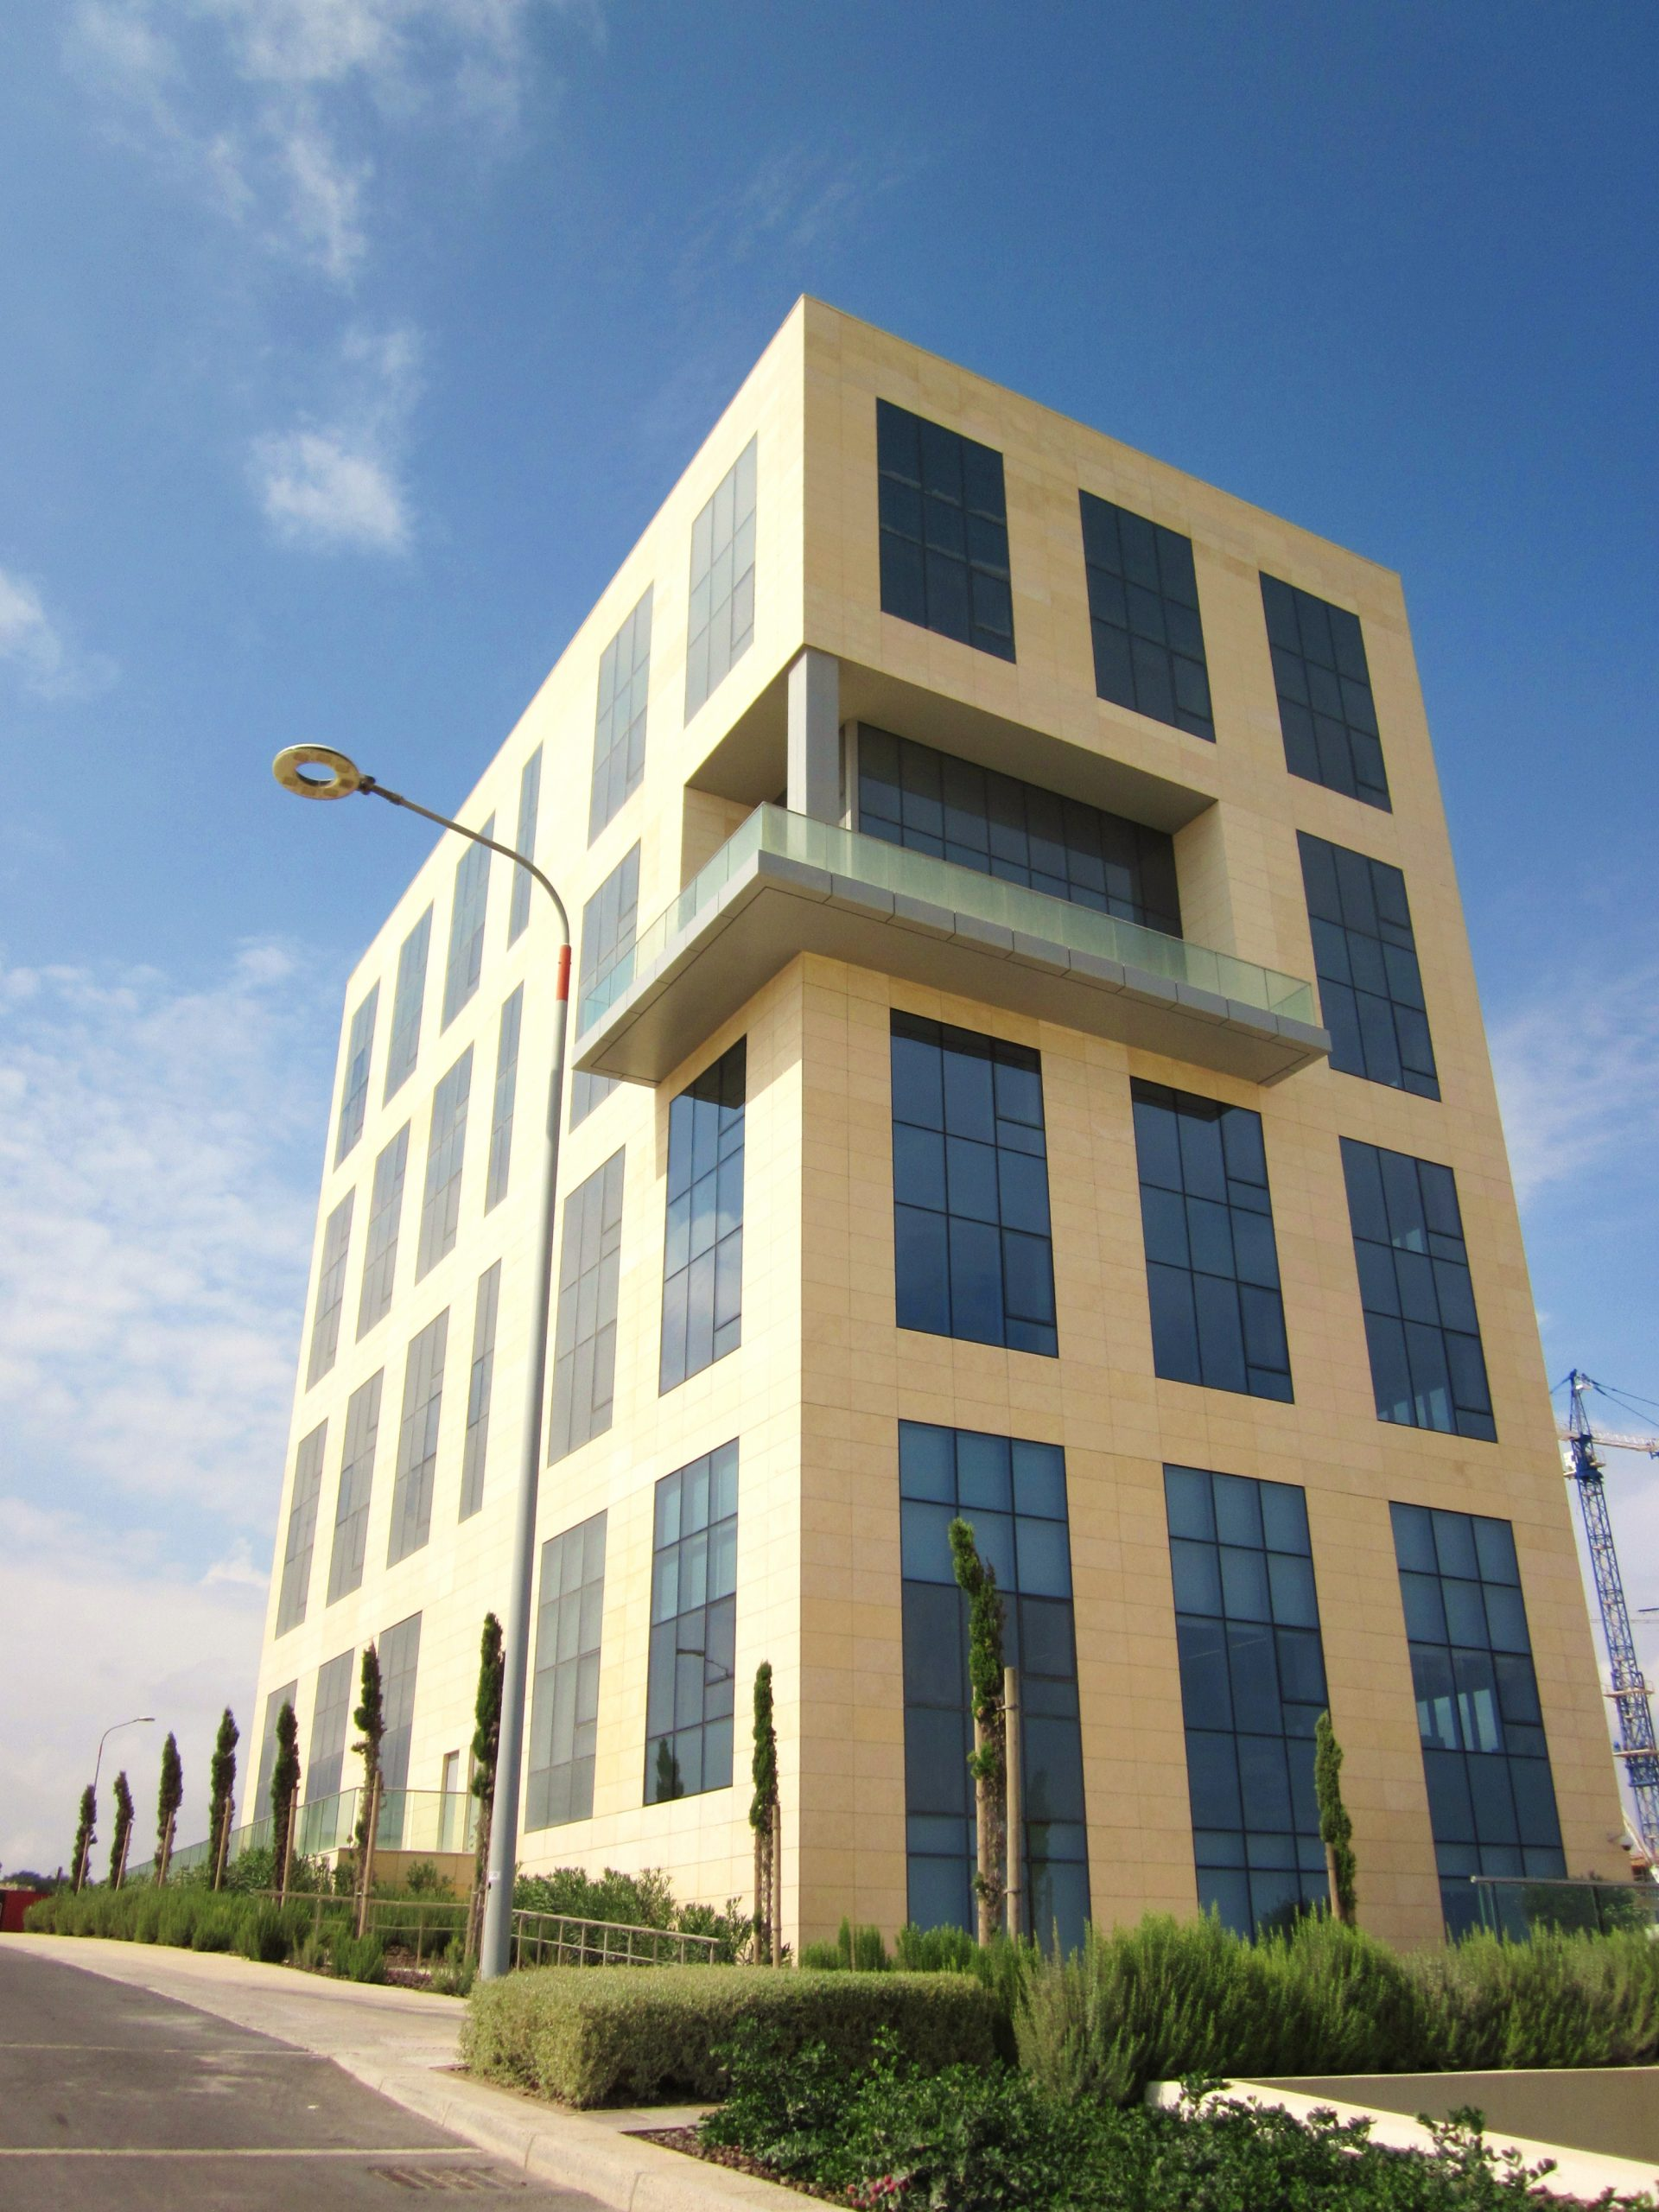 The first office block constructed at Smart City, Malta.